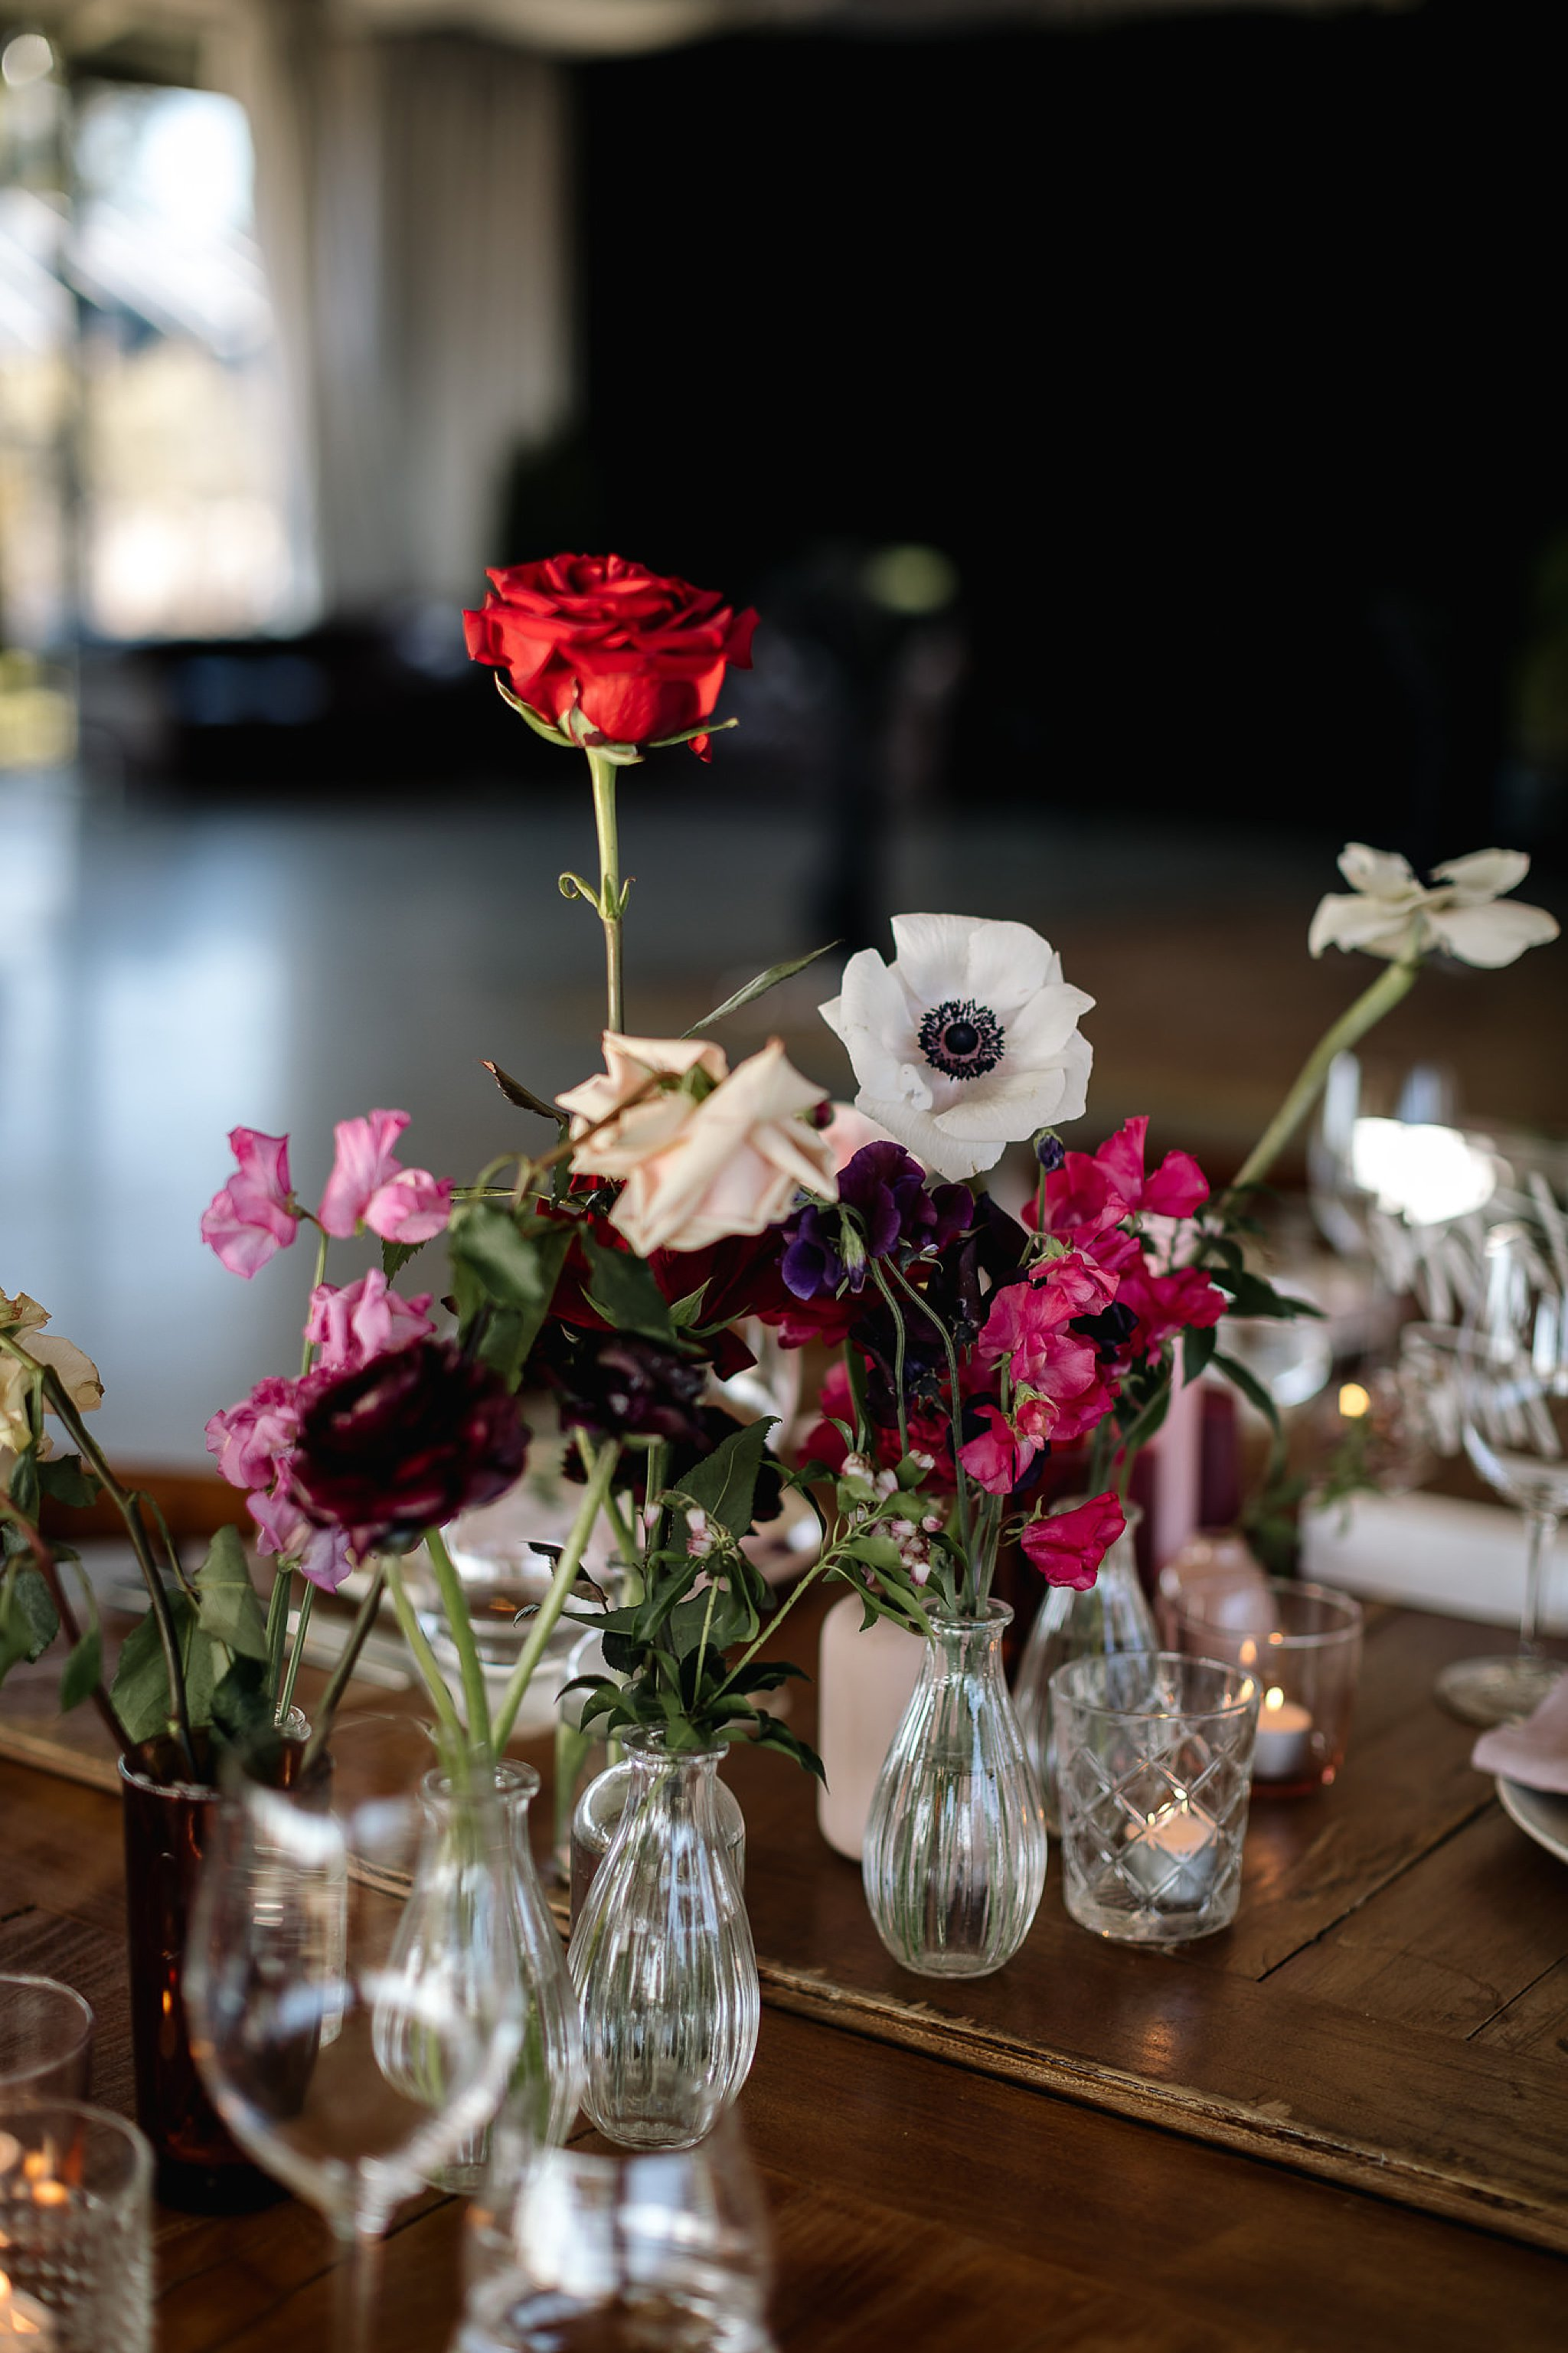 canberra florist,country wedding,Canberra Wedding Photographer,canberra wedding,canberra weddings,Keepsakephoto by the Keeffes,ACT wedding photographer,destination wedding photography,Southern Highlands Wedding,South Coast Wedding,